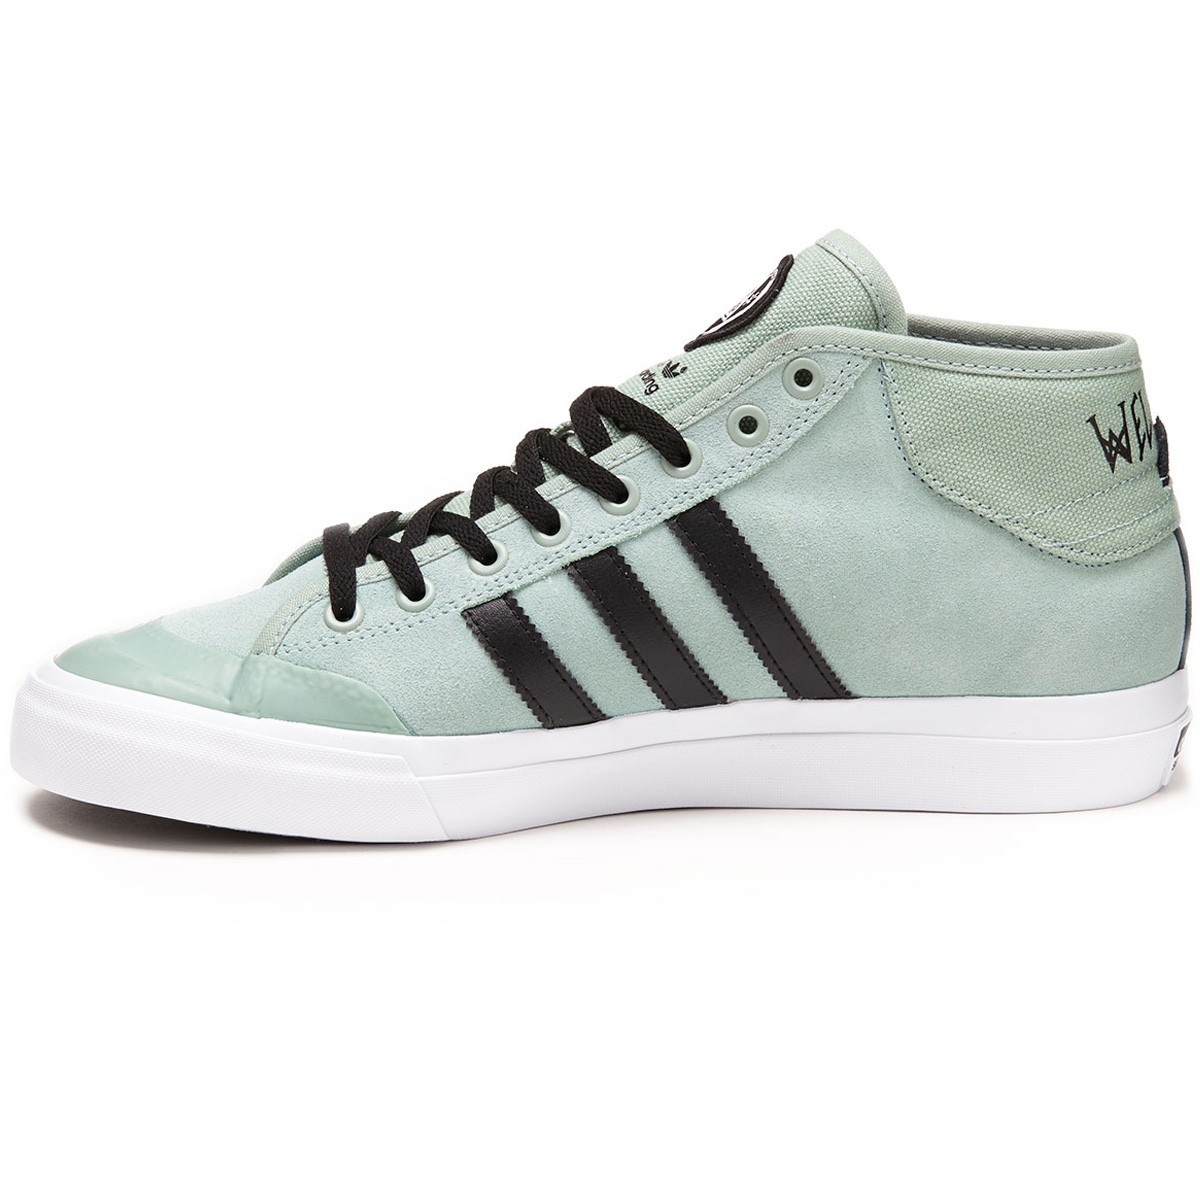 reputable site 53e71 2d5bb Adidas X Welcome Matchcourt Mid Shoes - Slate Black White - 6.0